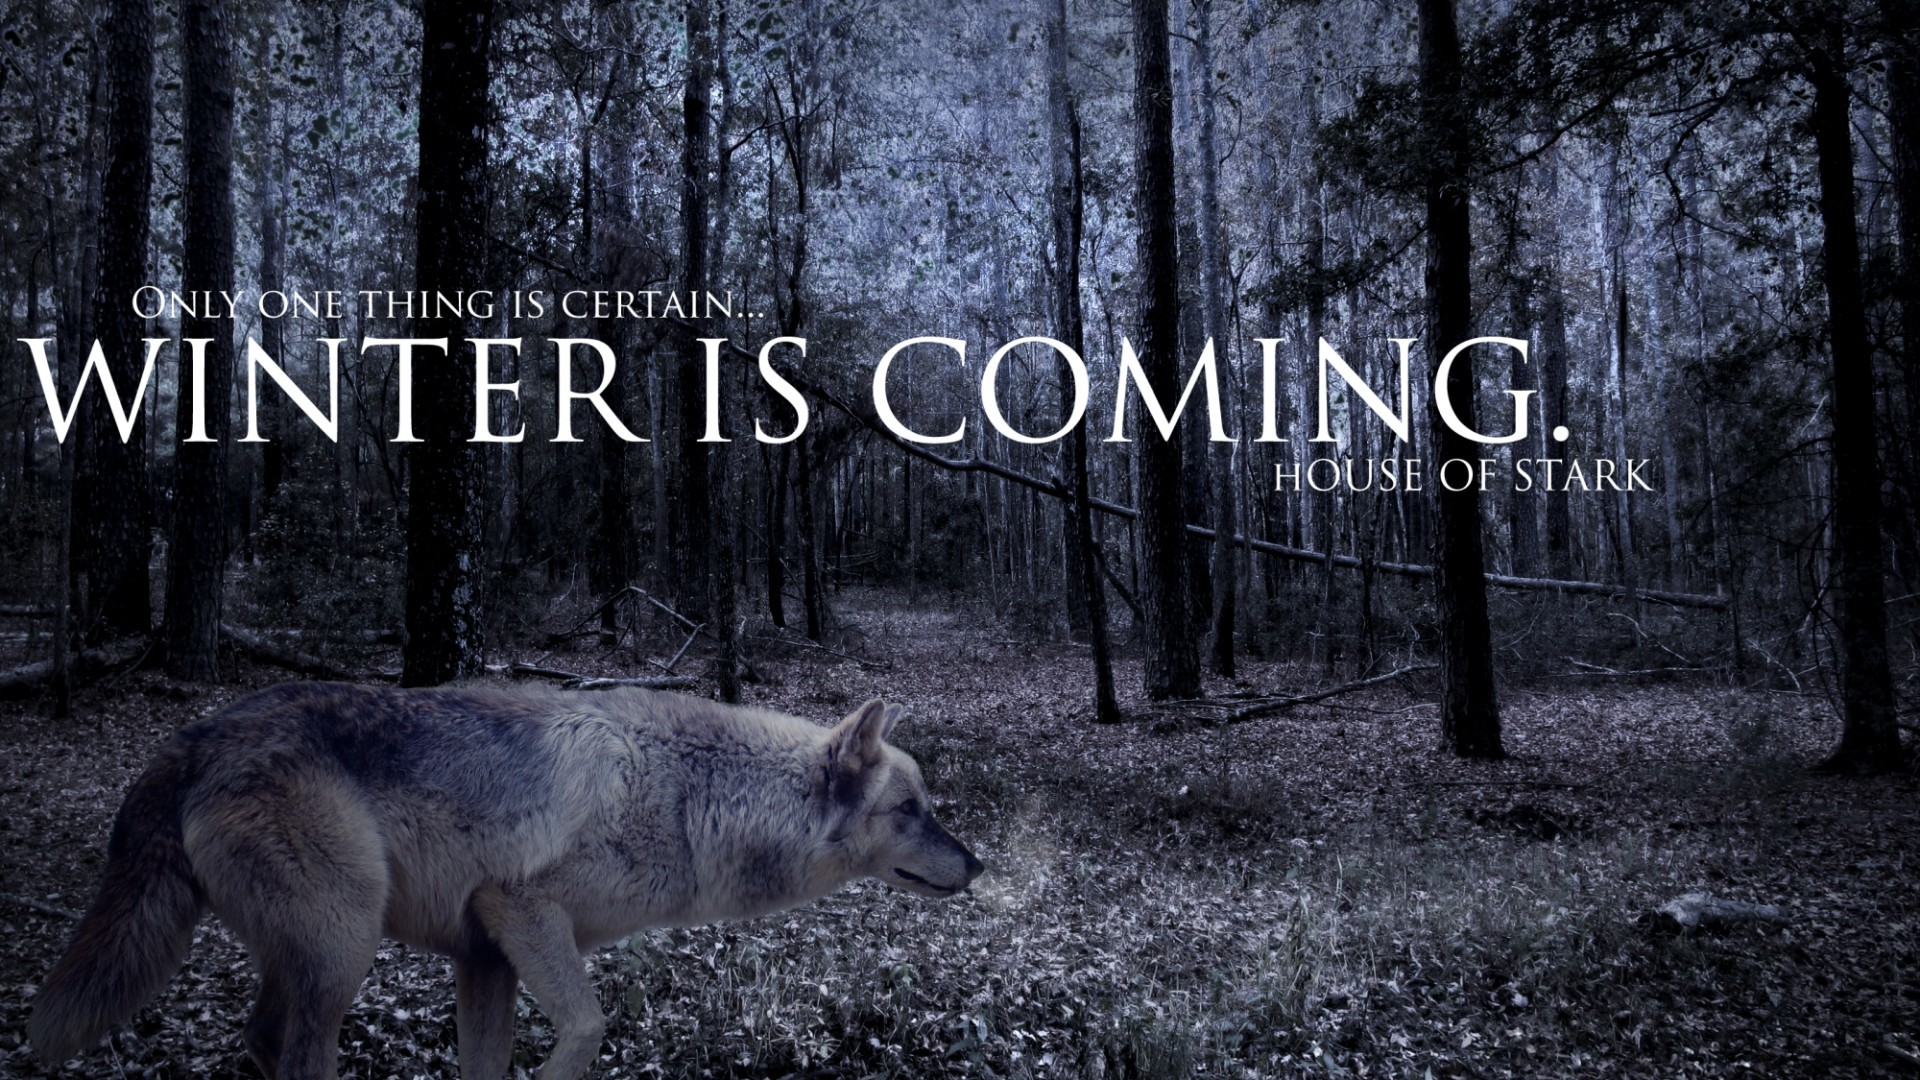 1920x1080 Game Of Thrones Wallpaper Winter Is Coming 2014 Free 15 High Definition Wallpapers HD